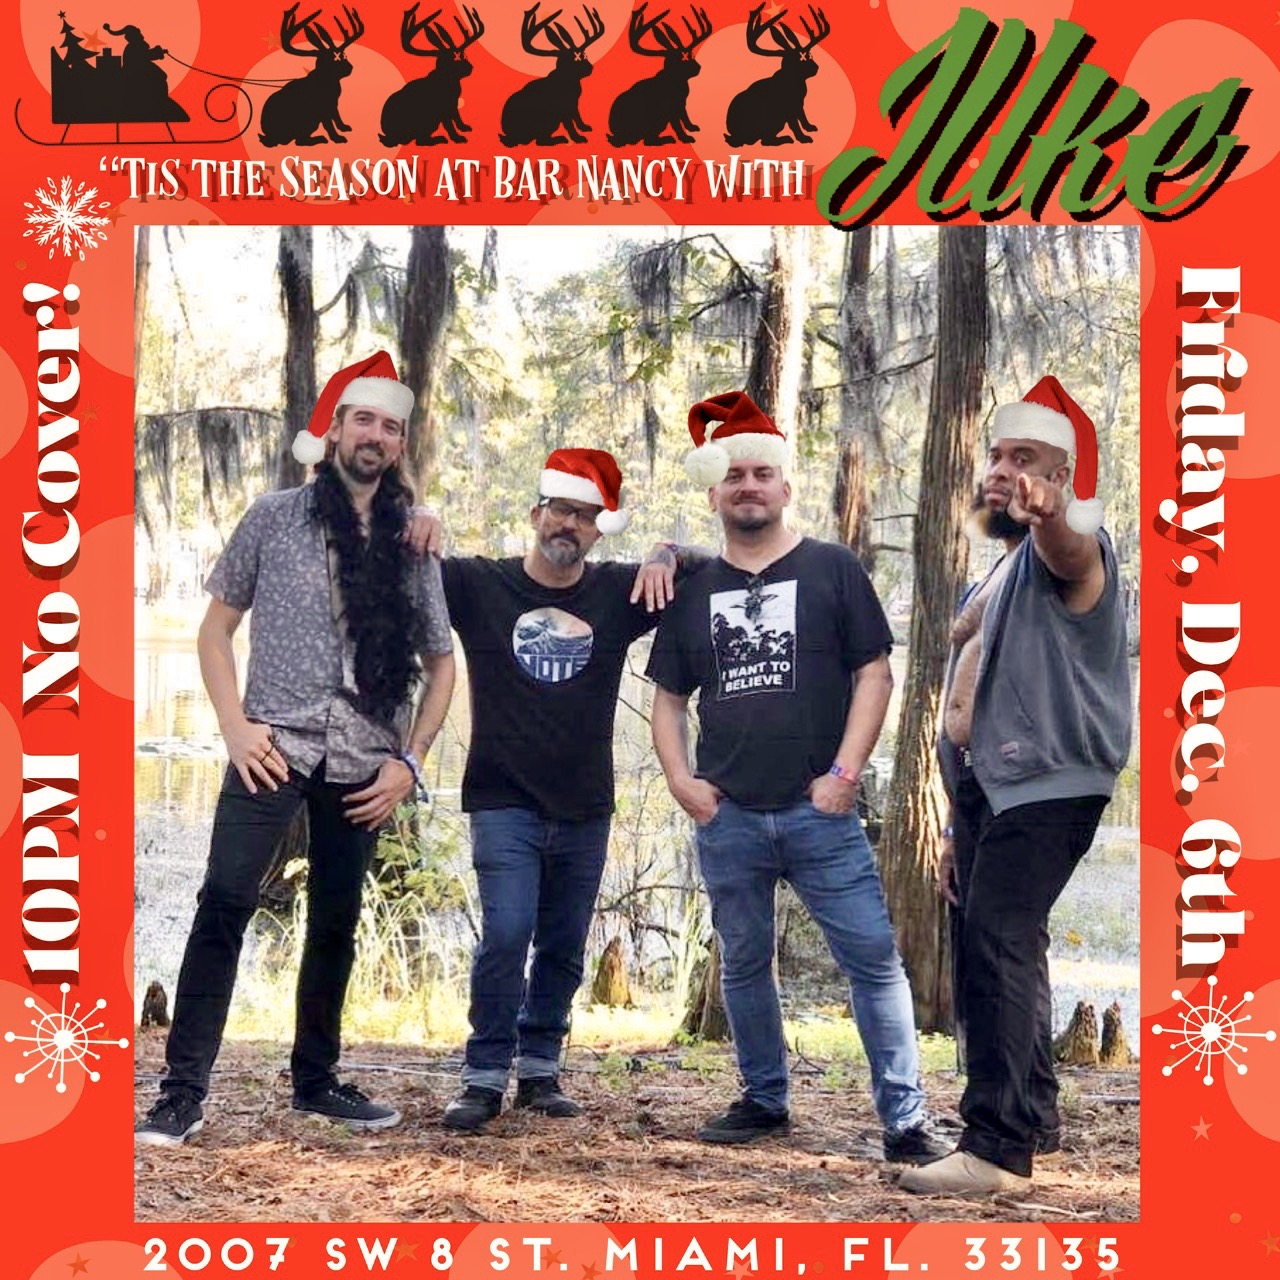 Tis the Season at Bar Nancy with JUke! Performing Live! @ Bar Nancy